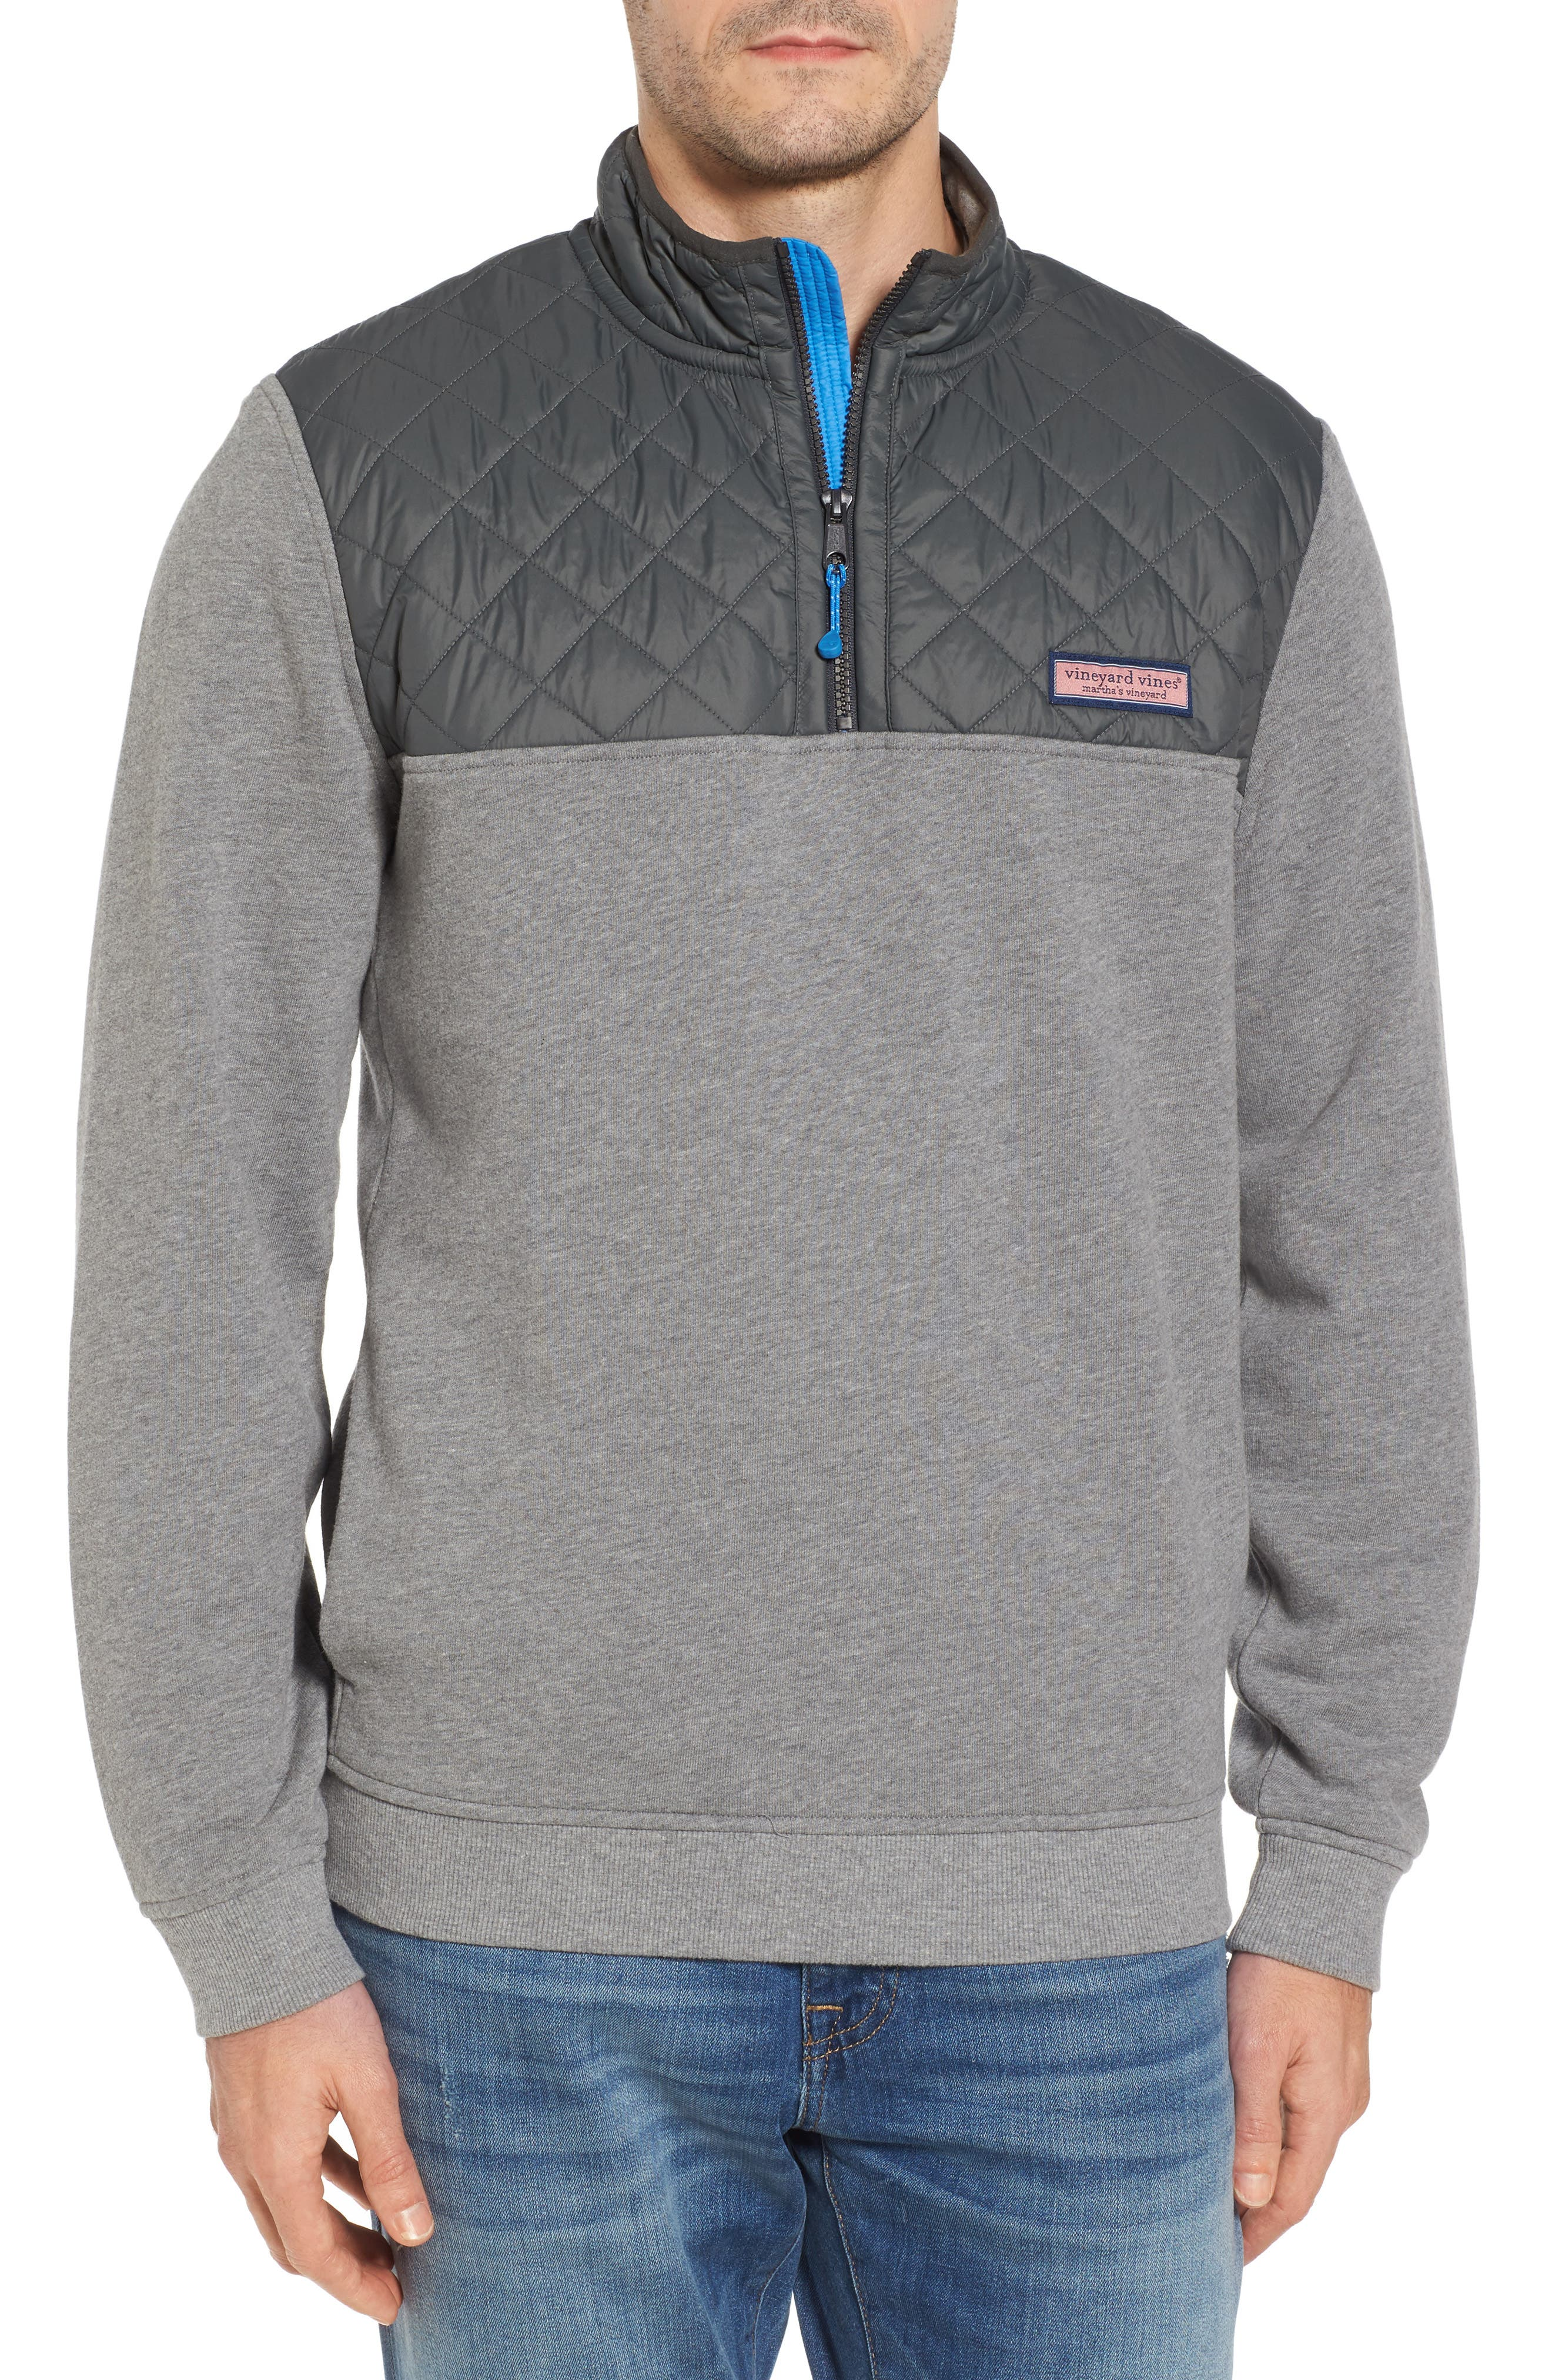 Shep Performance Quilted Yoke Quarter Zip Pullover,                             Main thumbnail 1, color,                             030